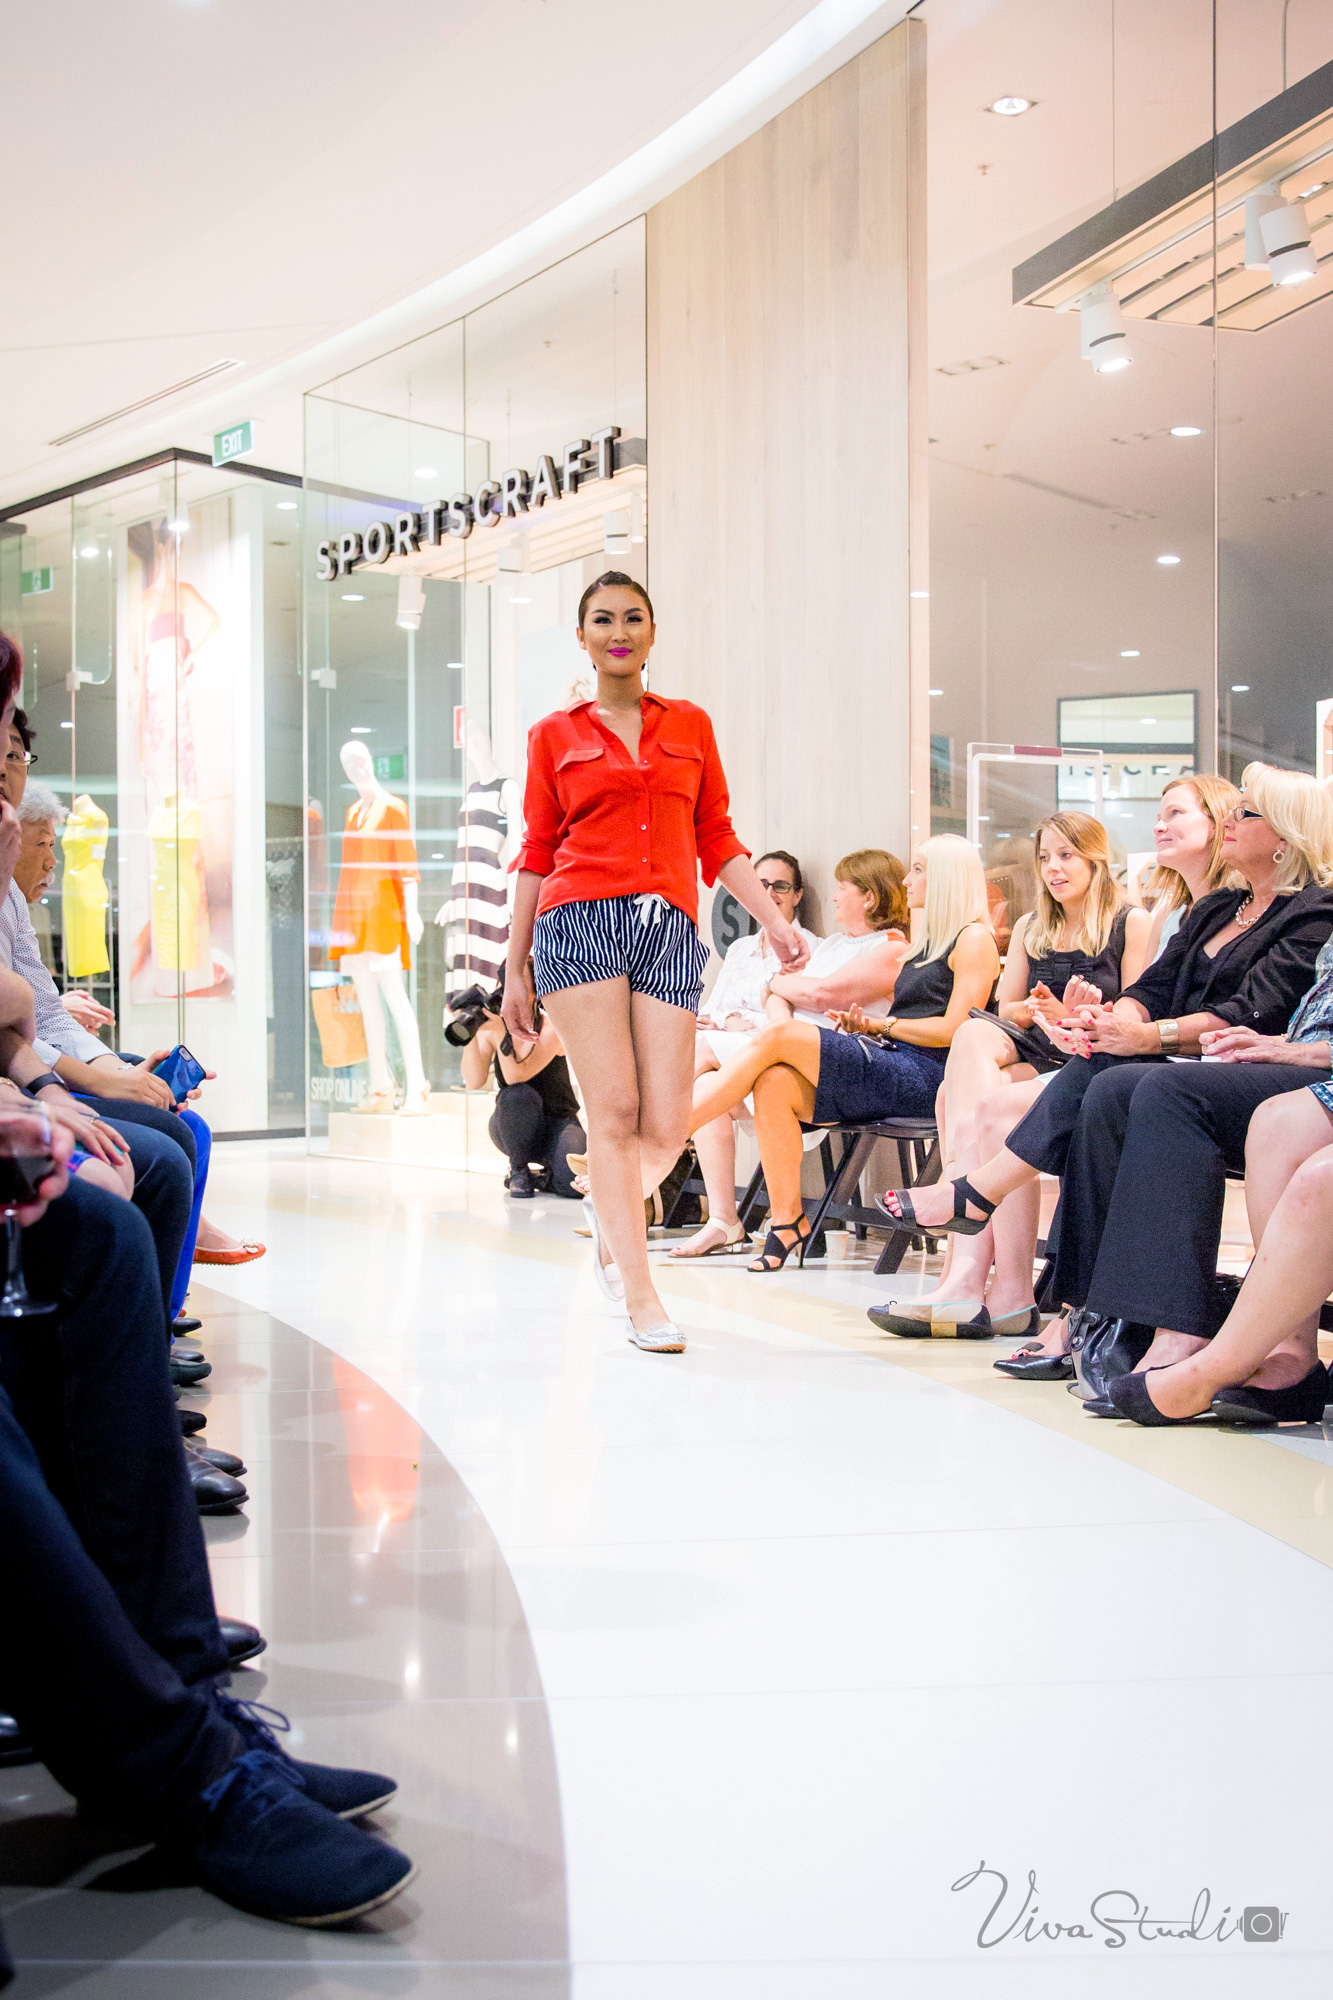 VivaStudio_Design_Photograpphy_Brisbane_Event_Fashionable_20151105_0157